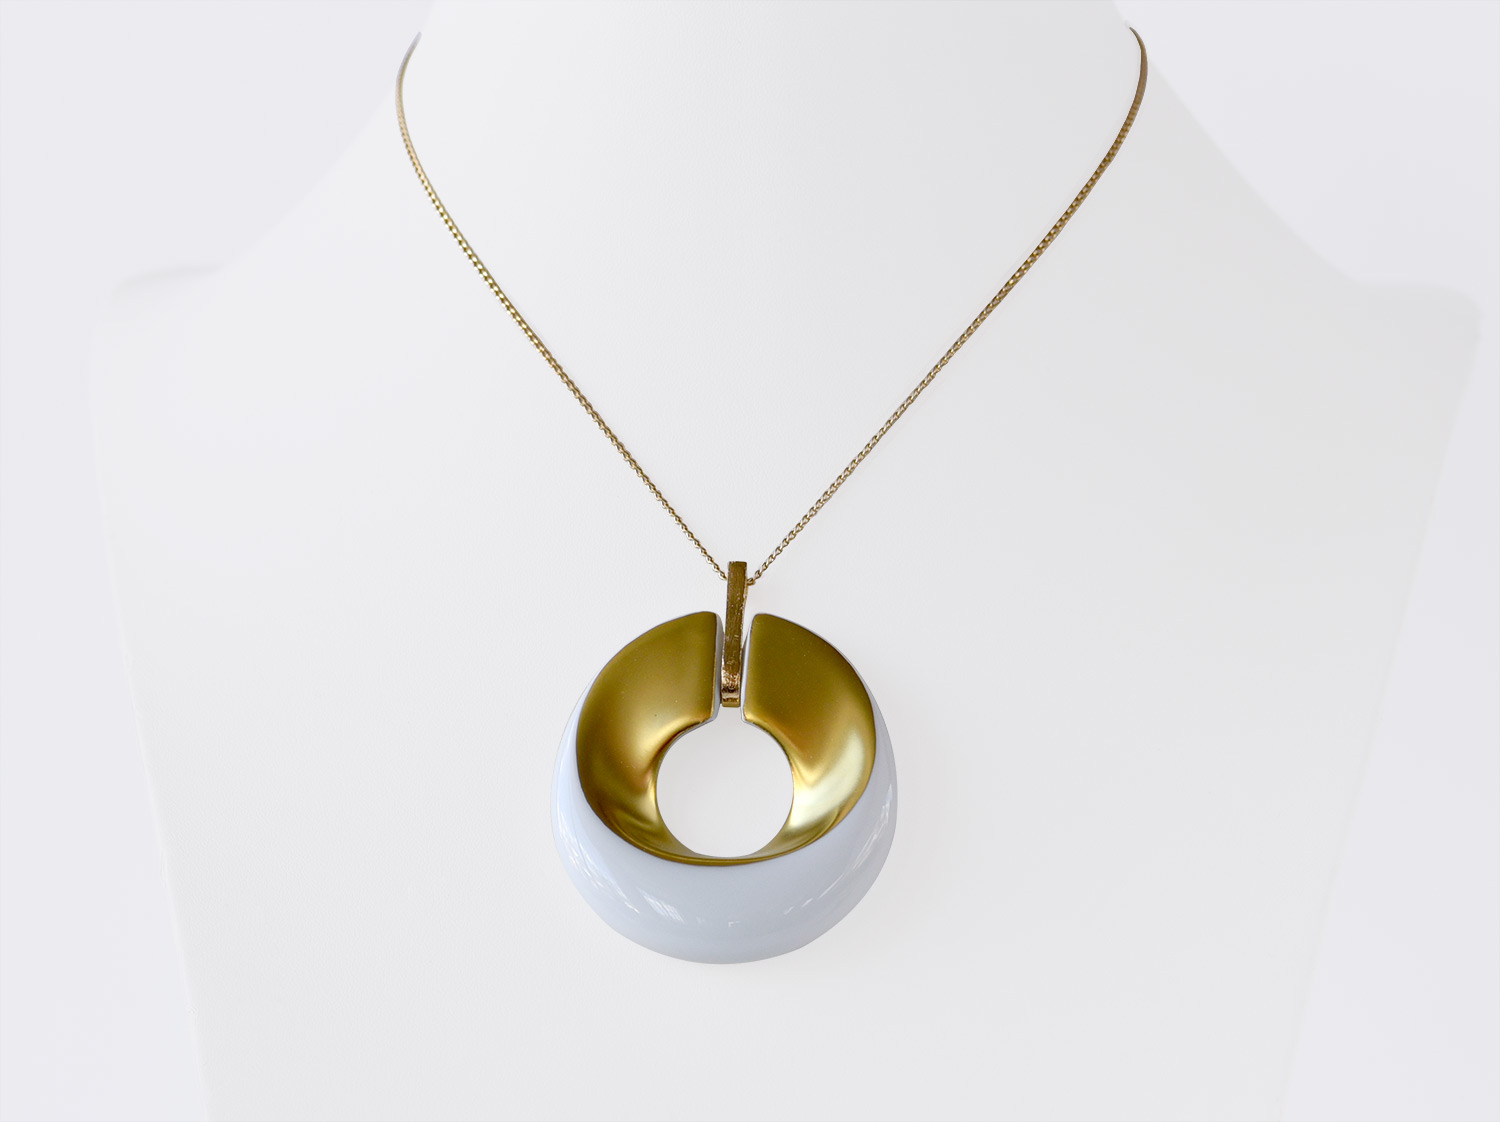 China Pendant of the collection ALBA BLANC ET OR | Bernardaud